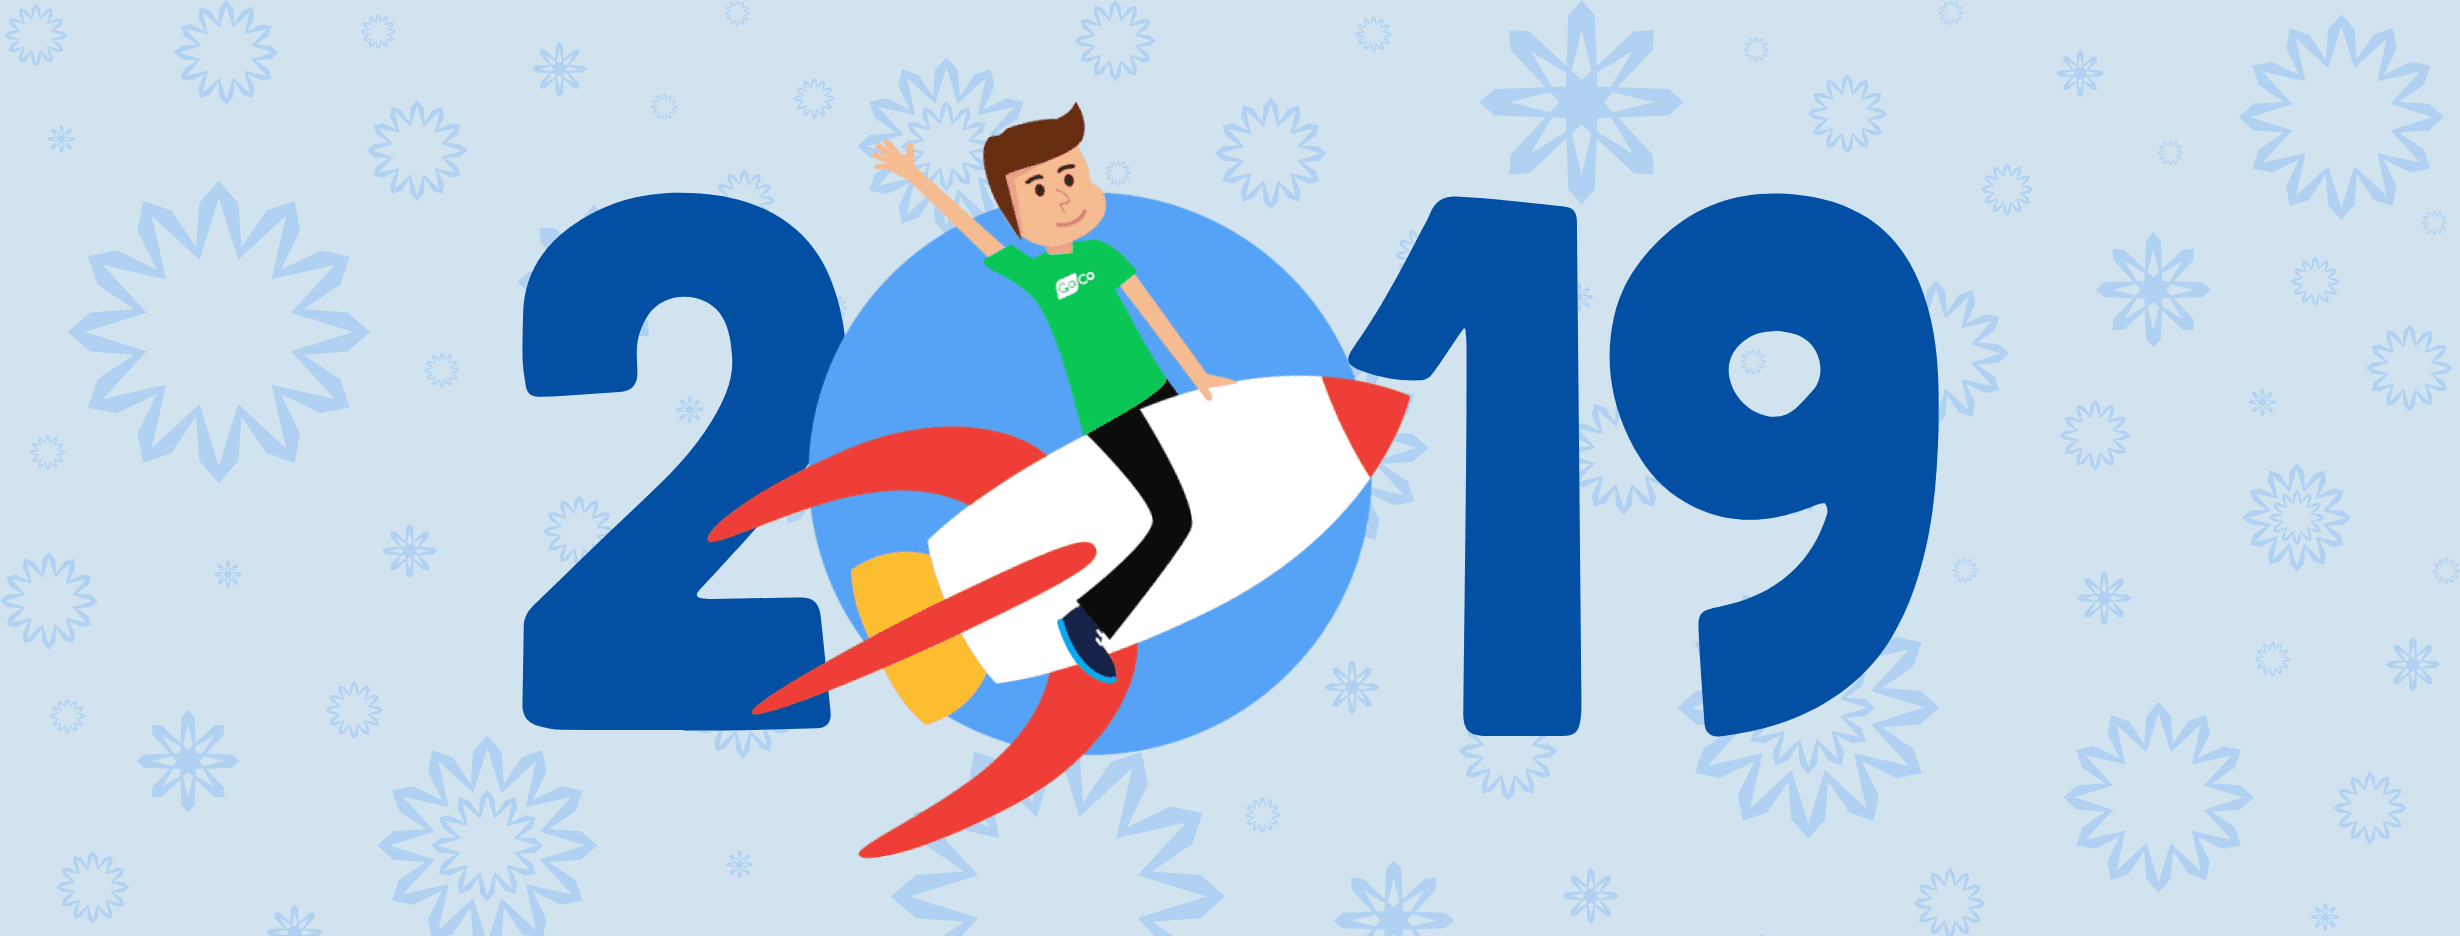 Email Headers - 2019 wrap up